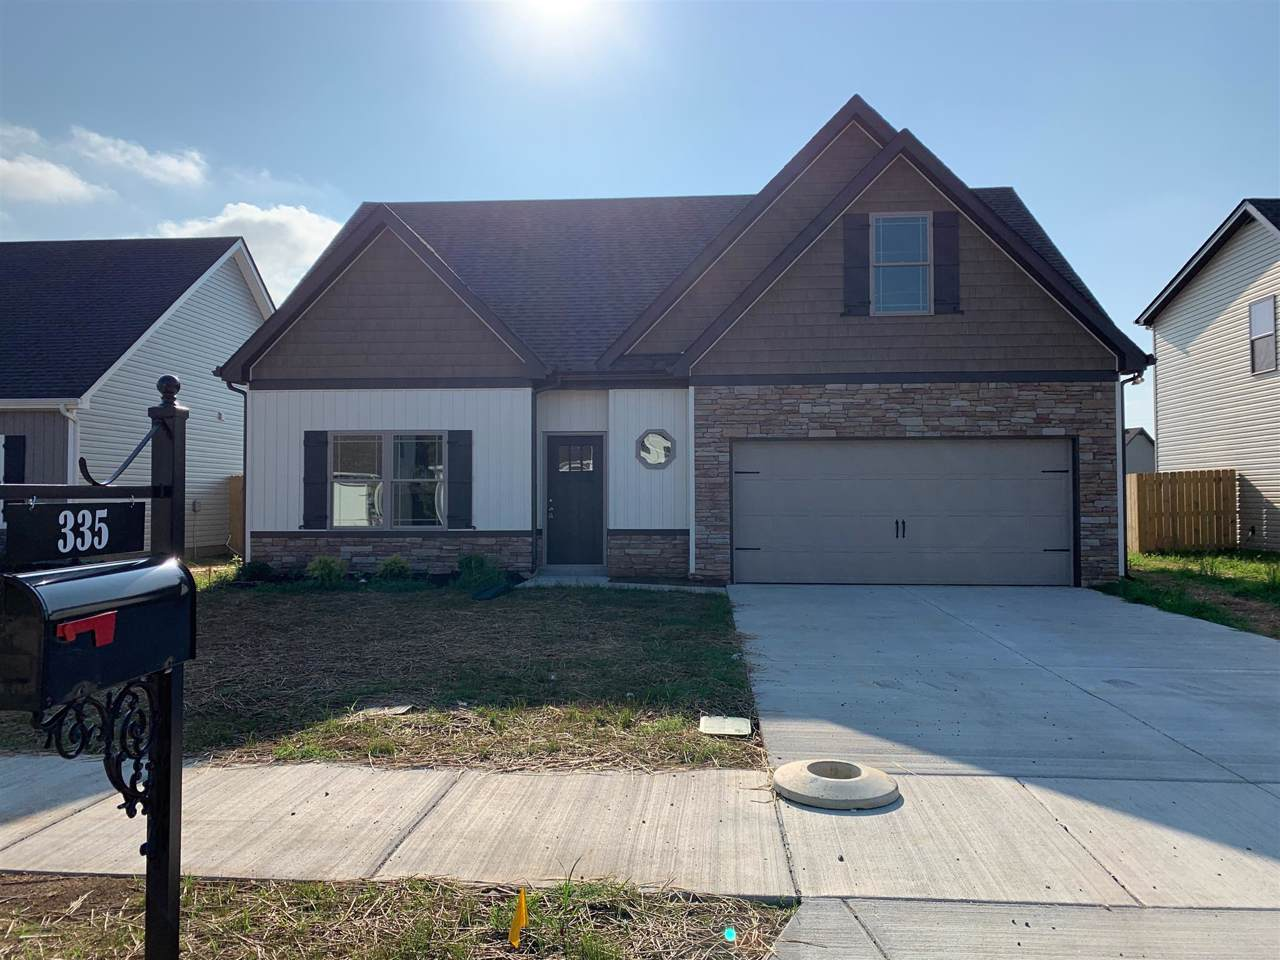 335 Providence Dr - Photo 1